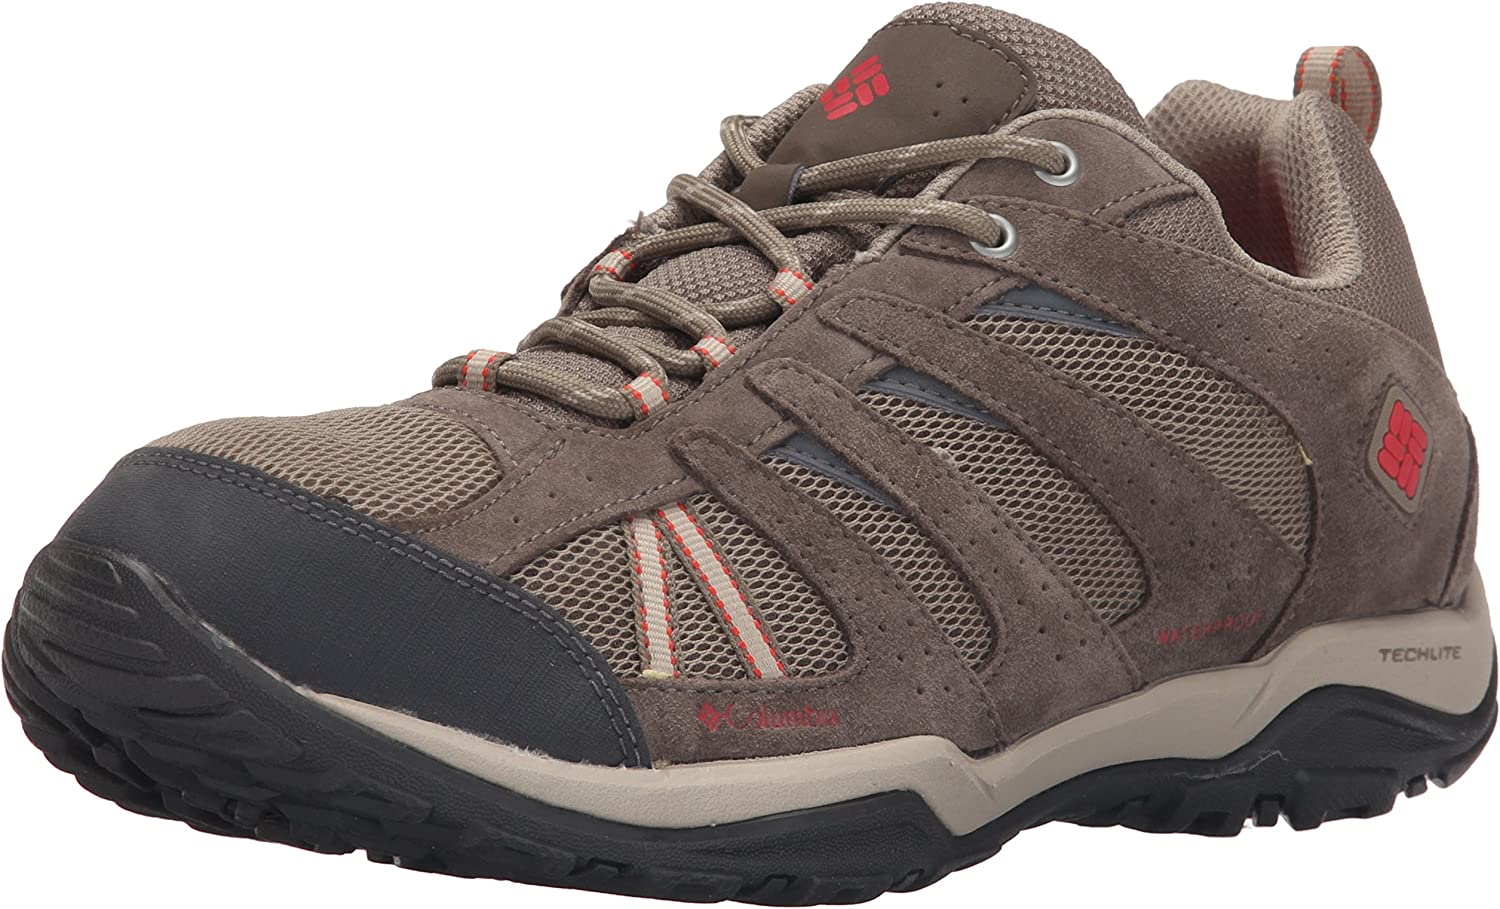 Columbia Women s Dakota Drifter Waterproof Hiking Shoe, Breathable Leather, Durable